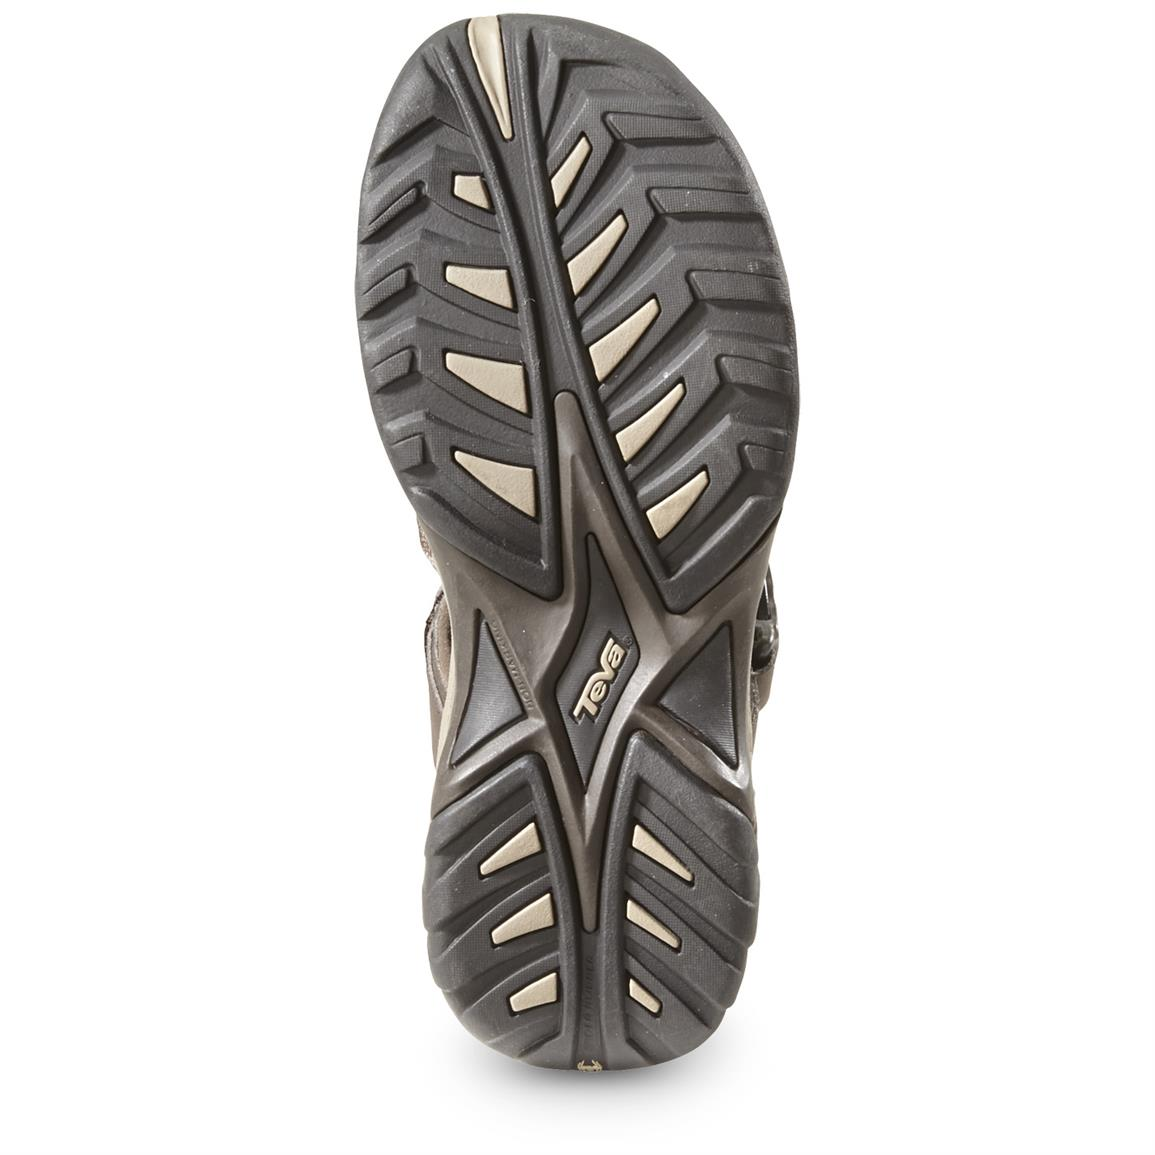 Spider Original rubber outsoles offer exceptional traction